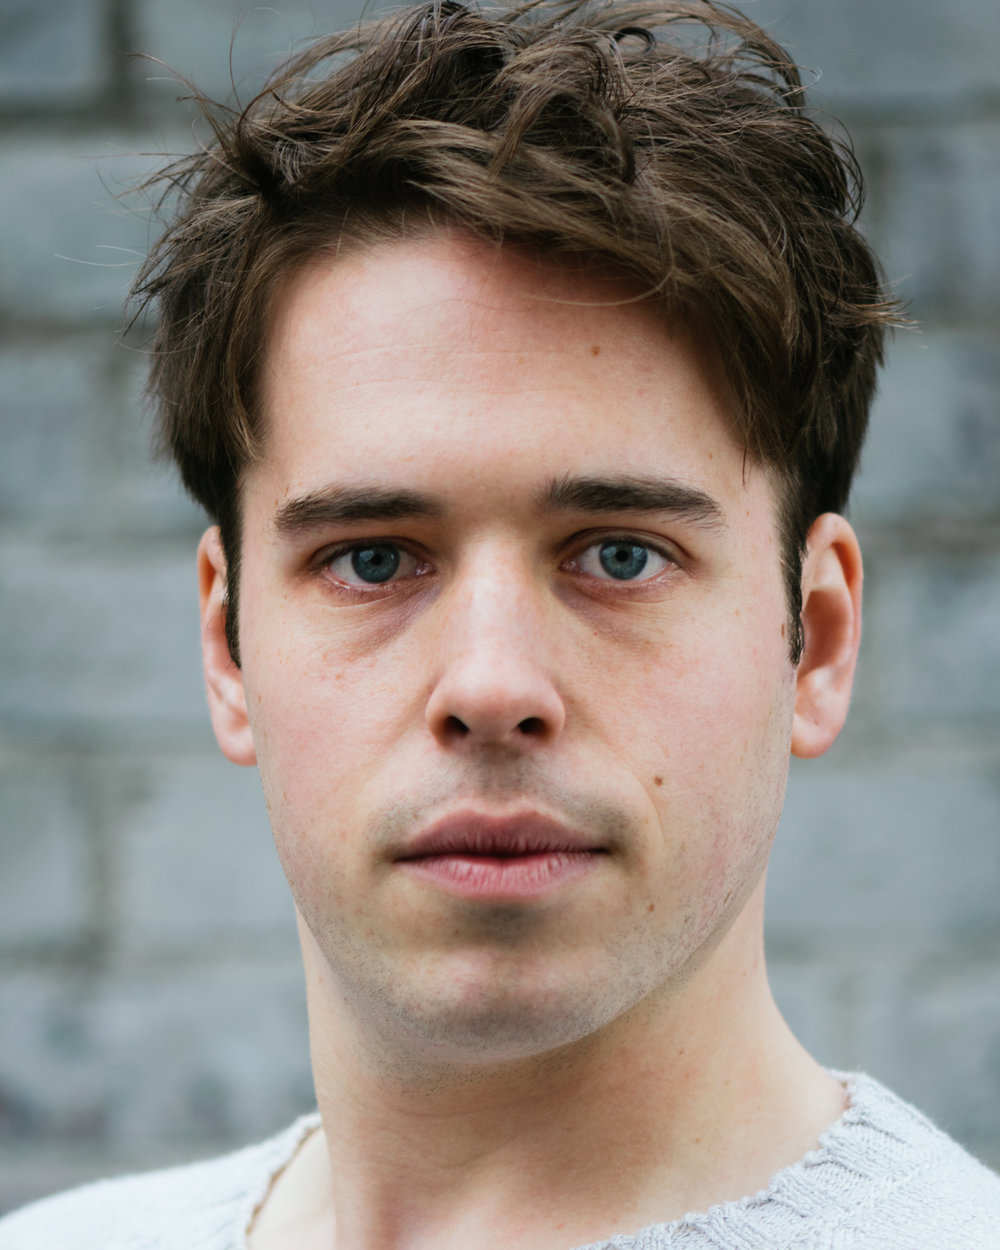 Joe Cater - Actor - Contact Rufus Stone - Swee - 07473226221